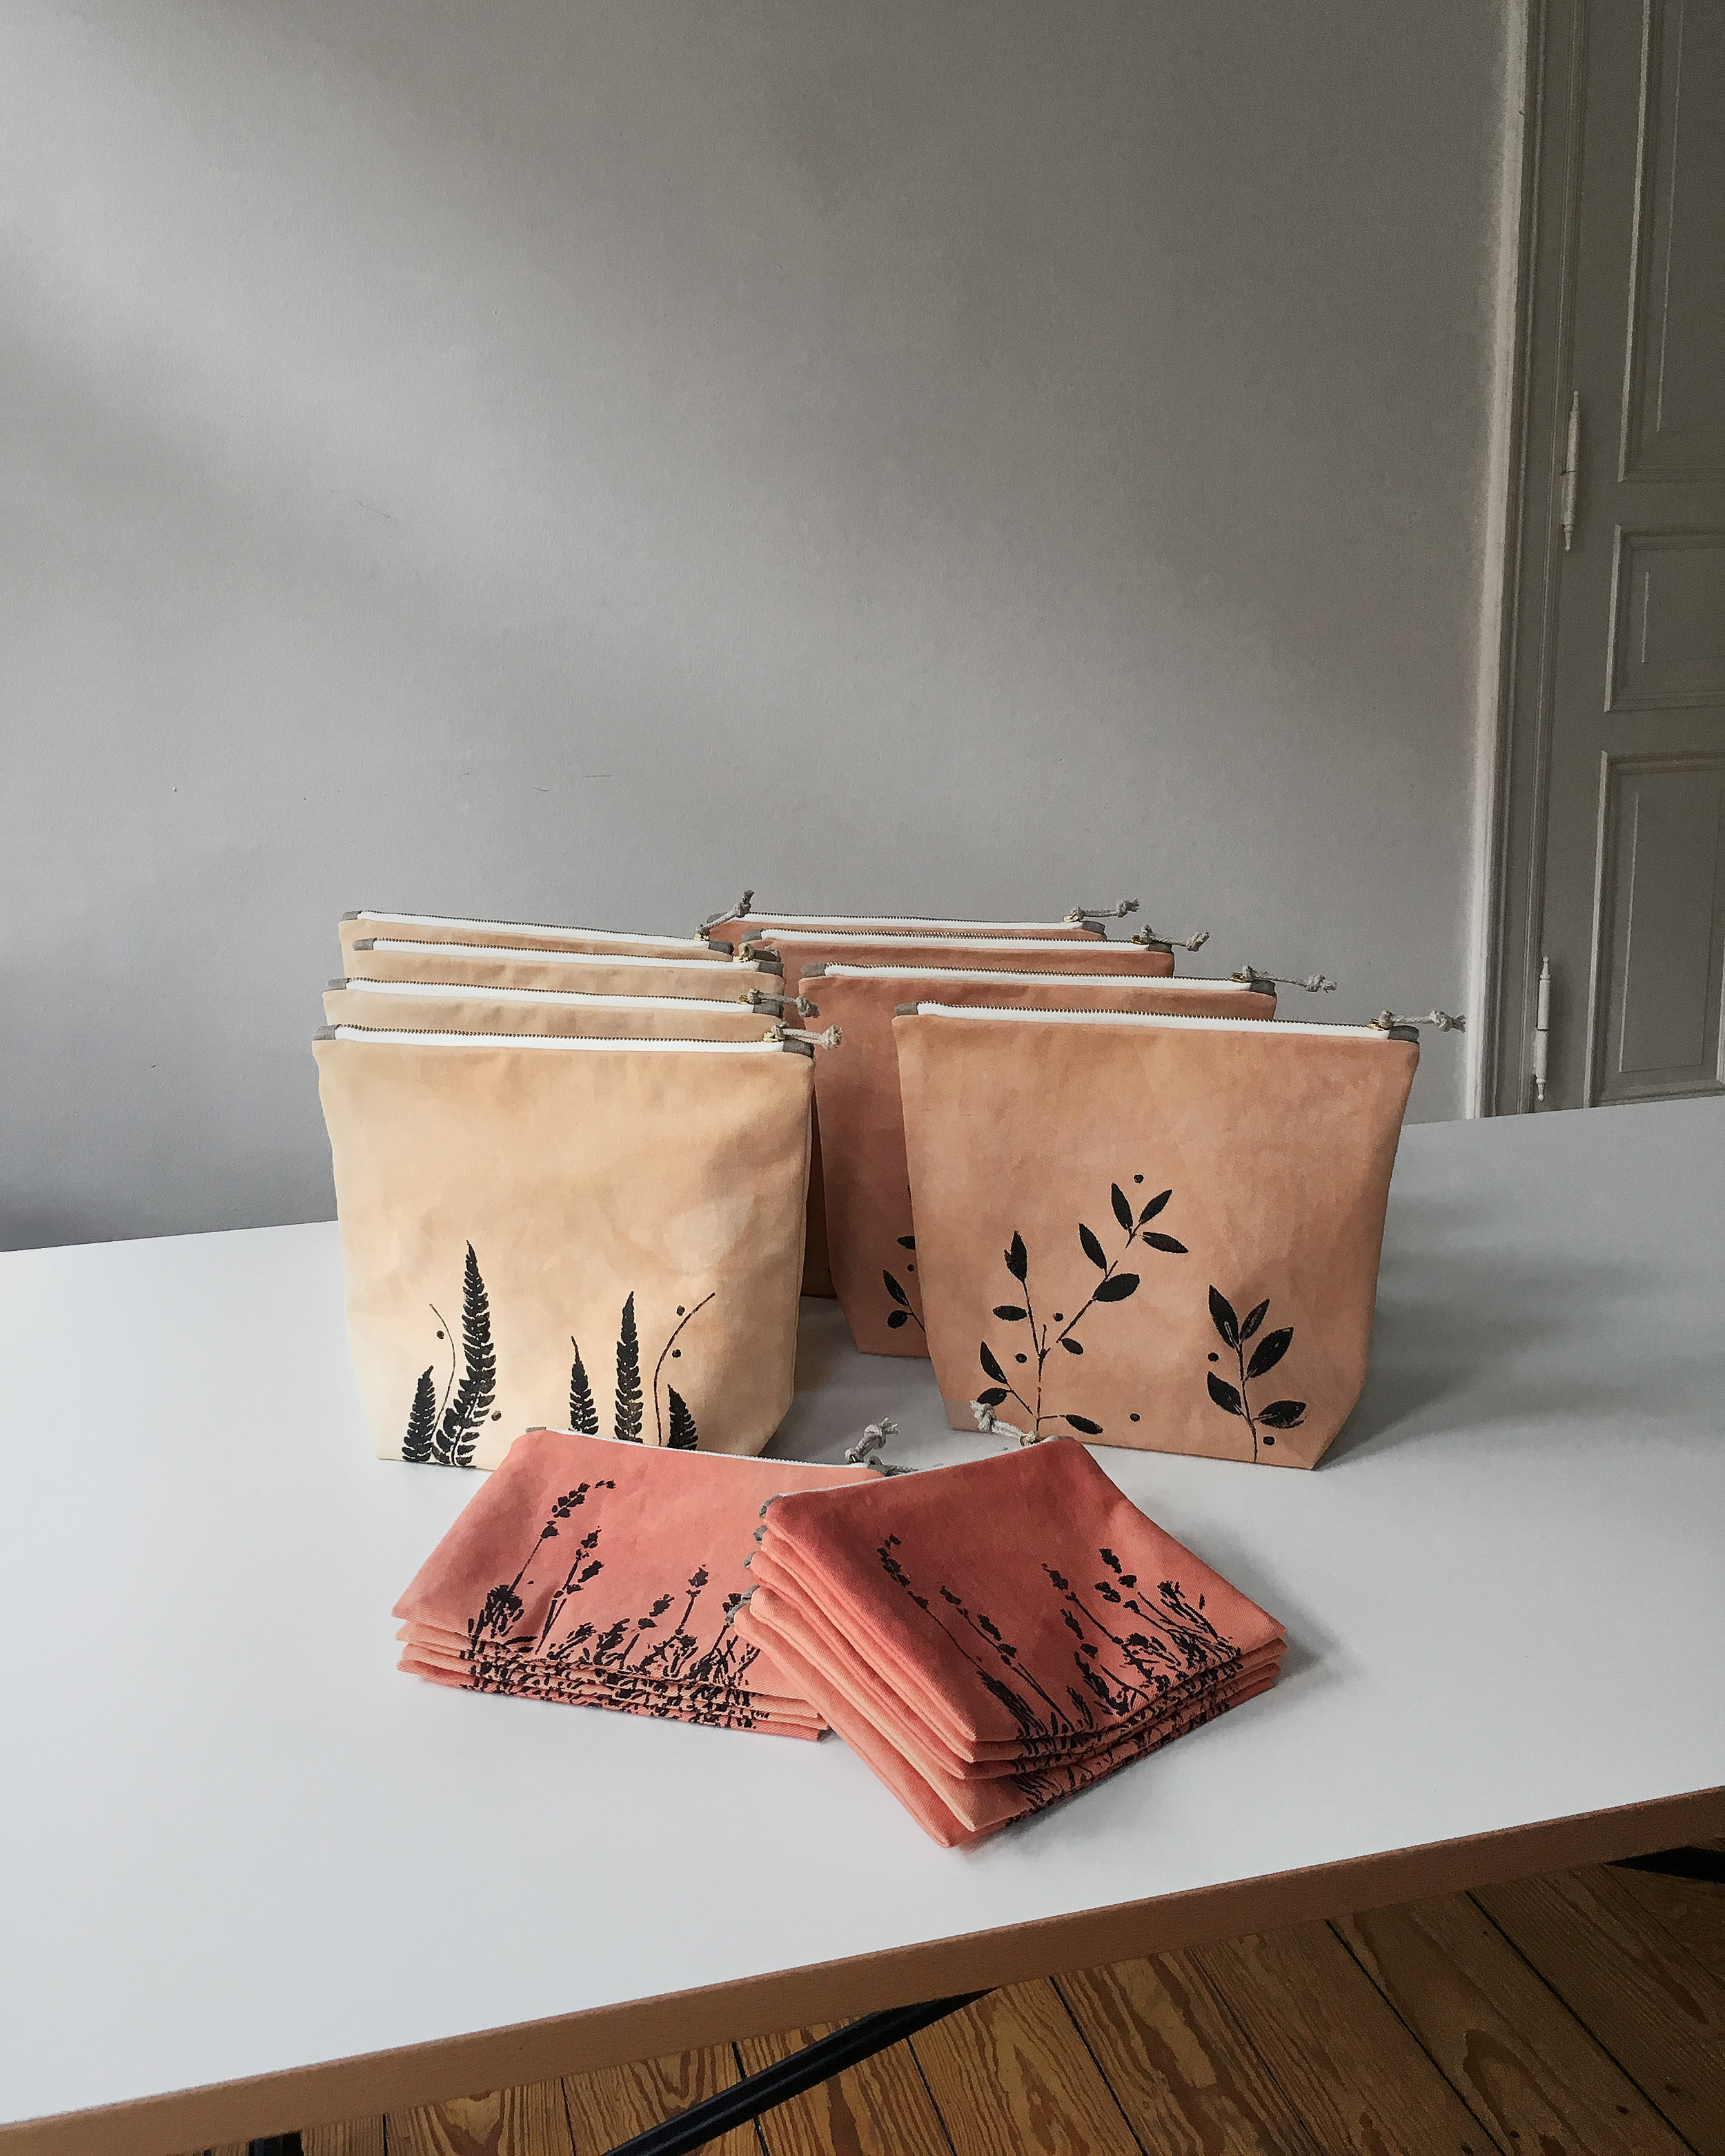 These plant dyed sustainable bags are soon available in Australia #dyed #plantdyed #deying #sustainable #bag #pouch